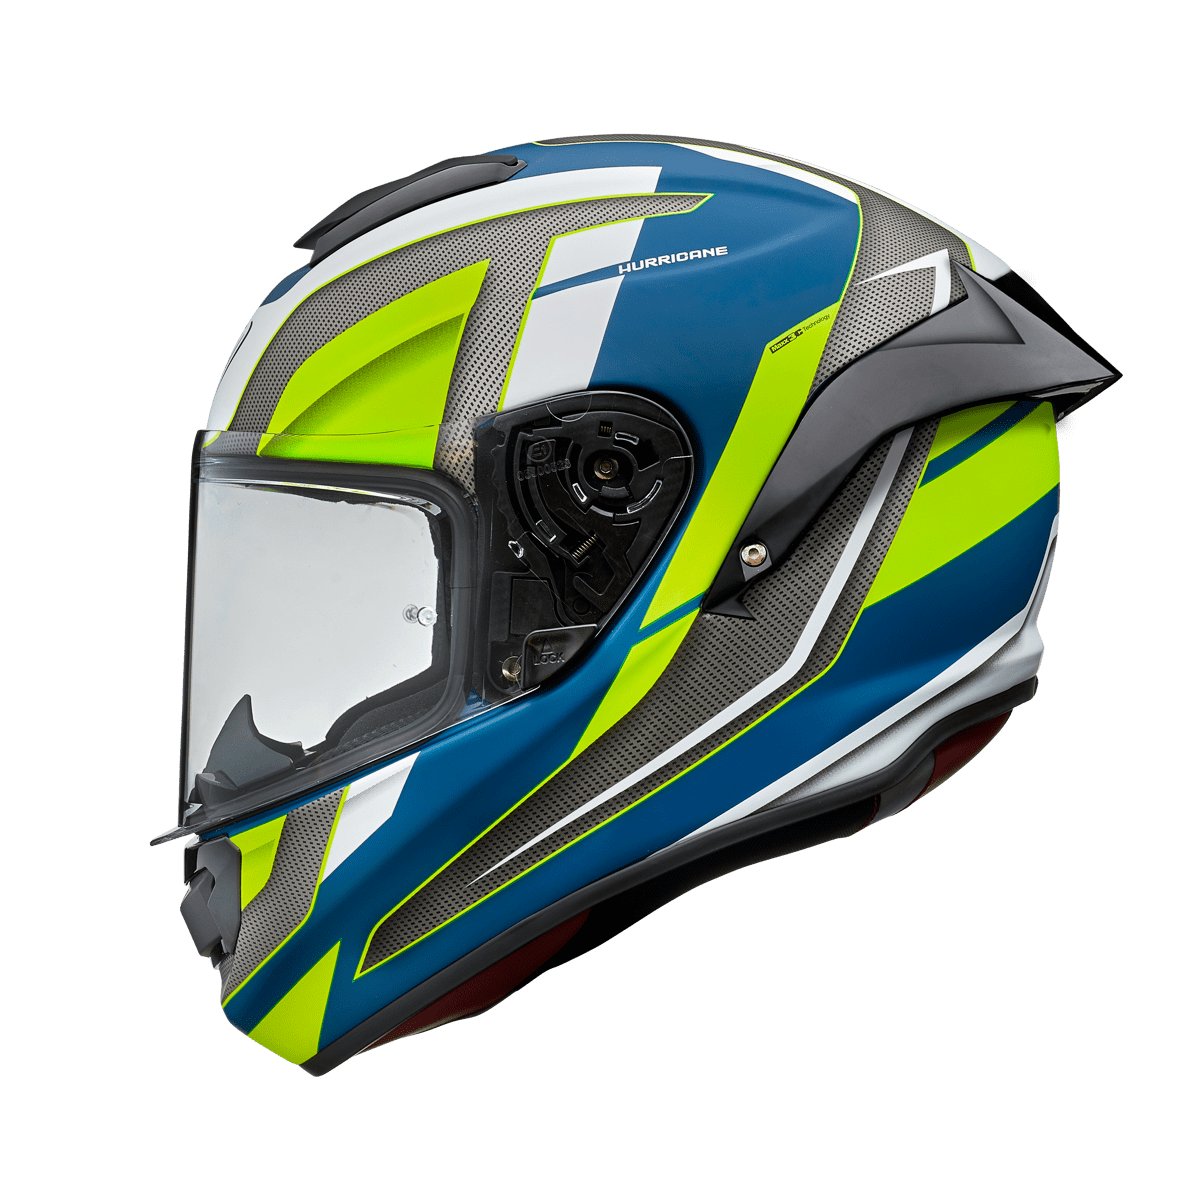 Hurricane_Draft-Blue-Fluo-Yellow_Side-72ppi-copia